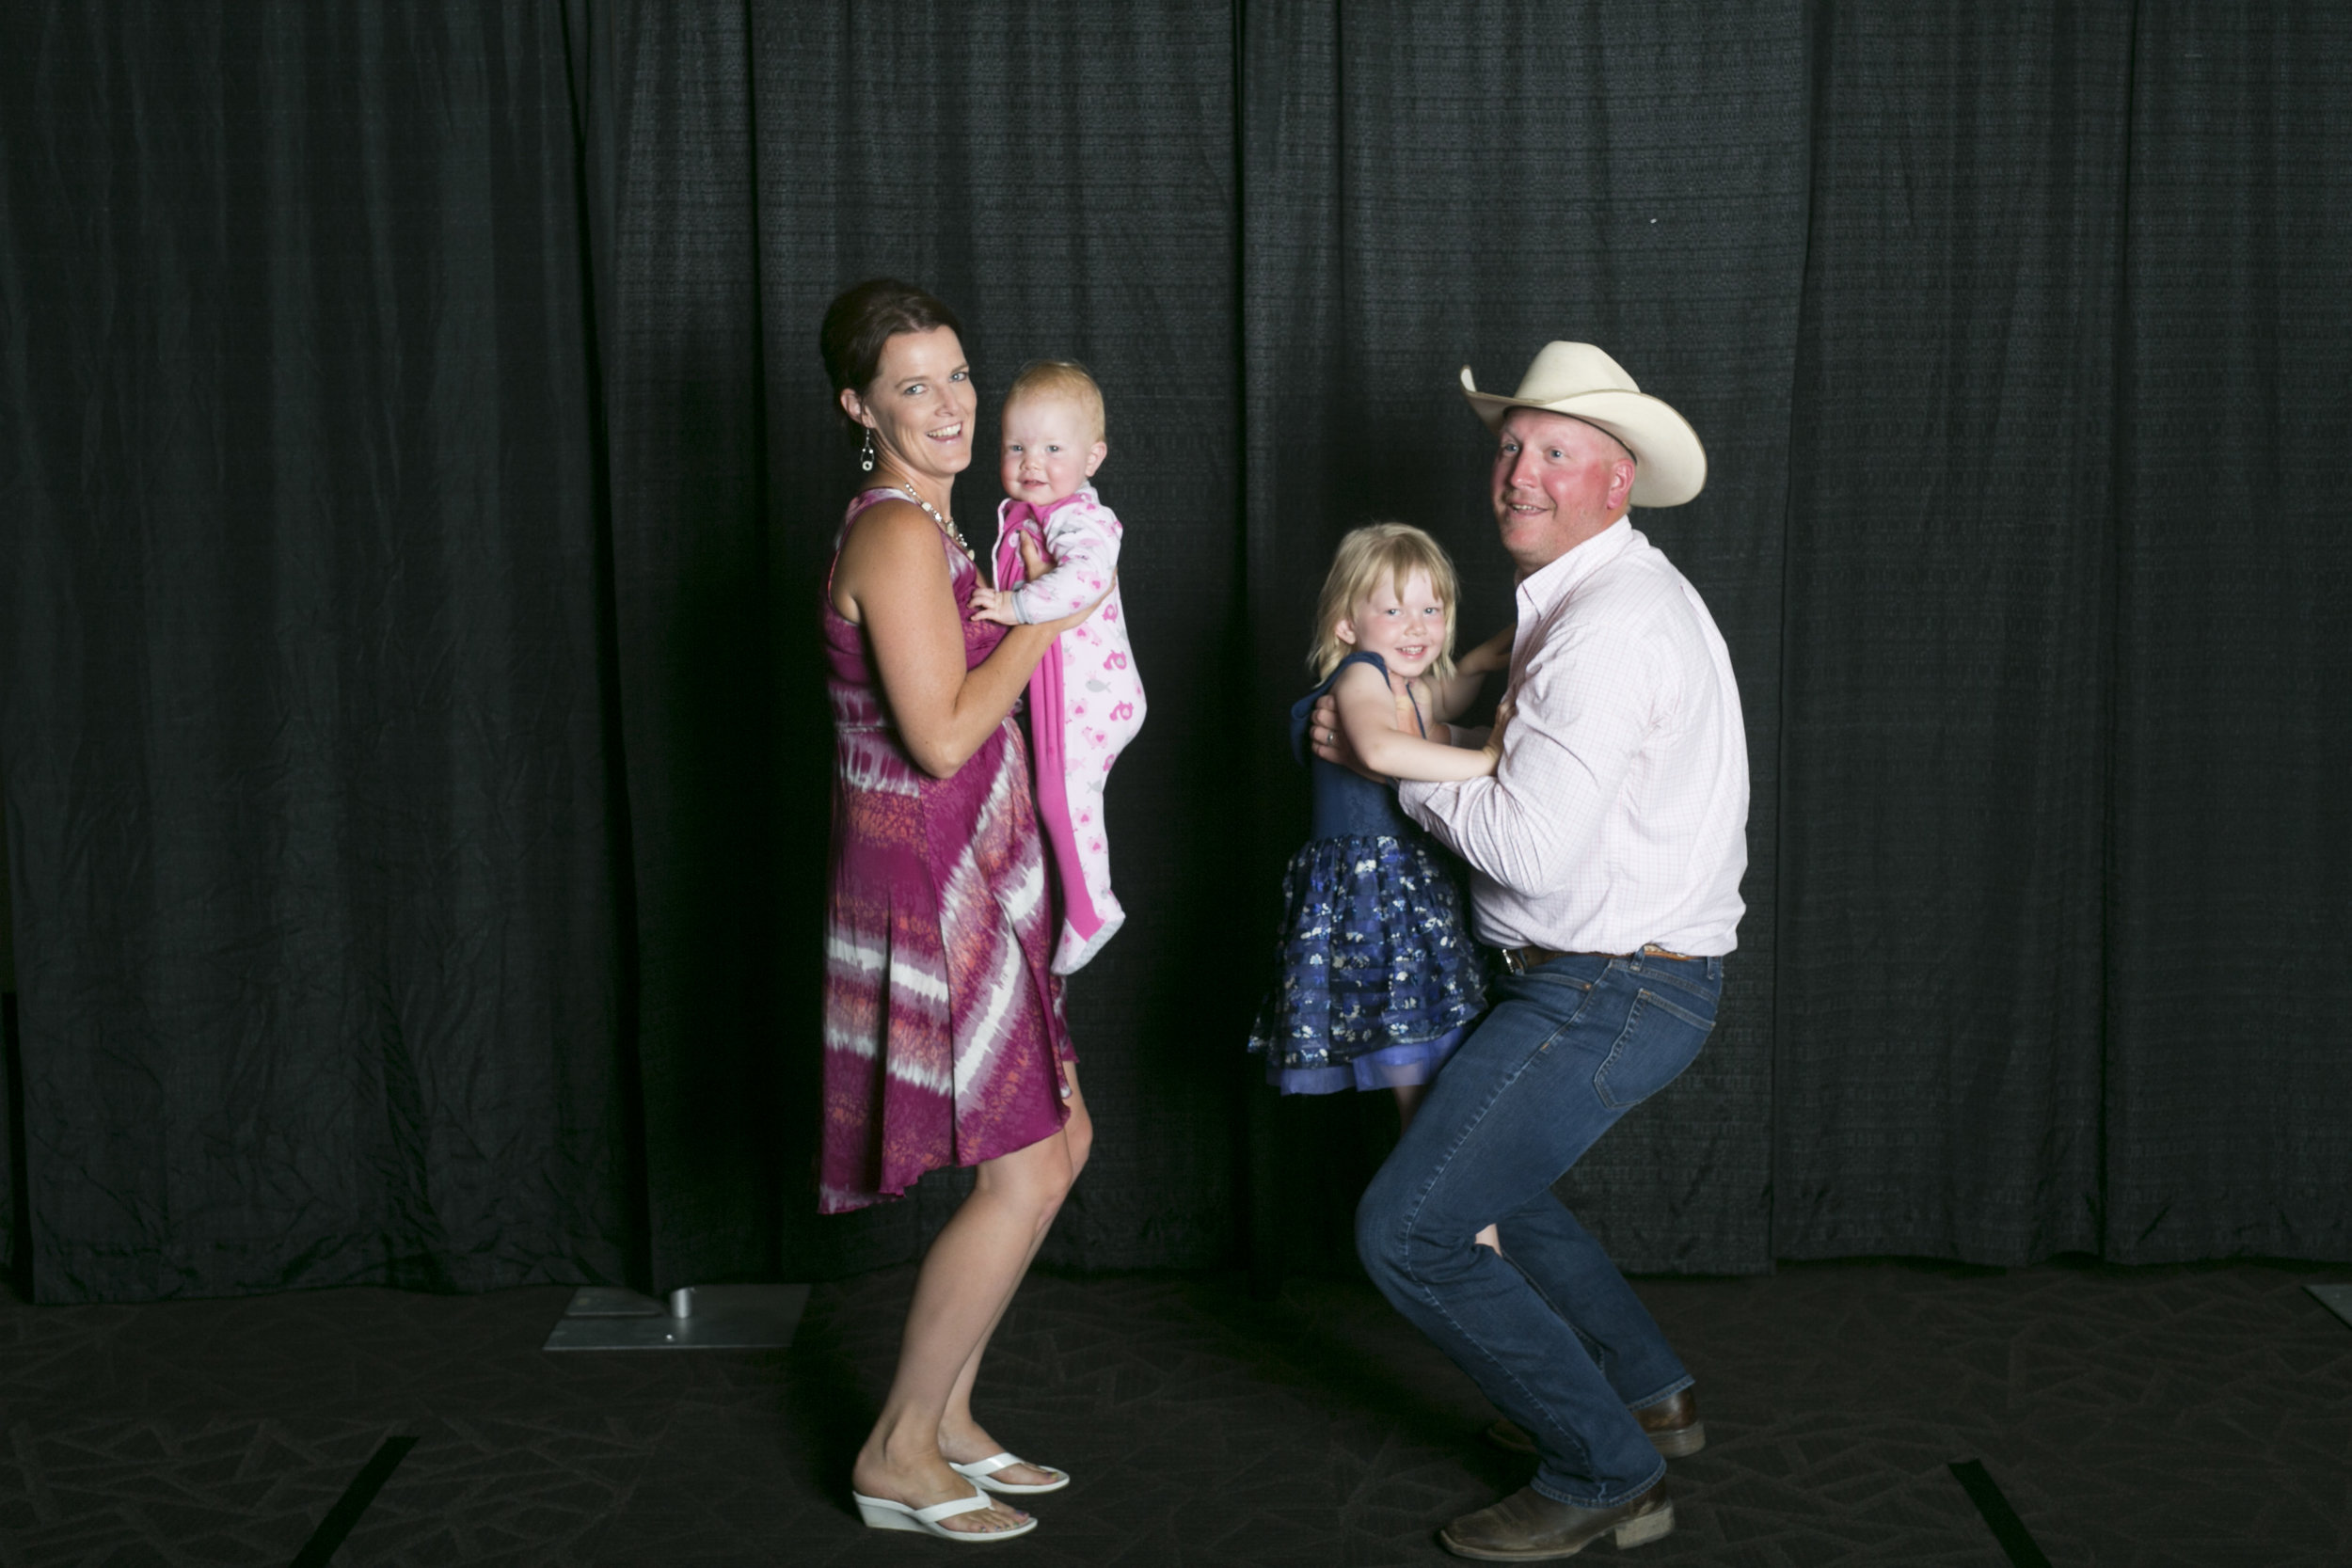 wedding photo booth-11.jpg